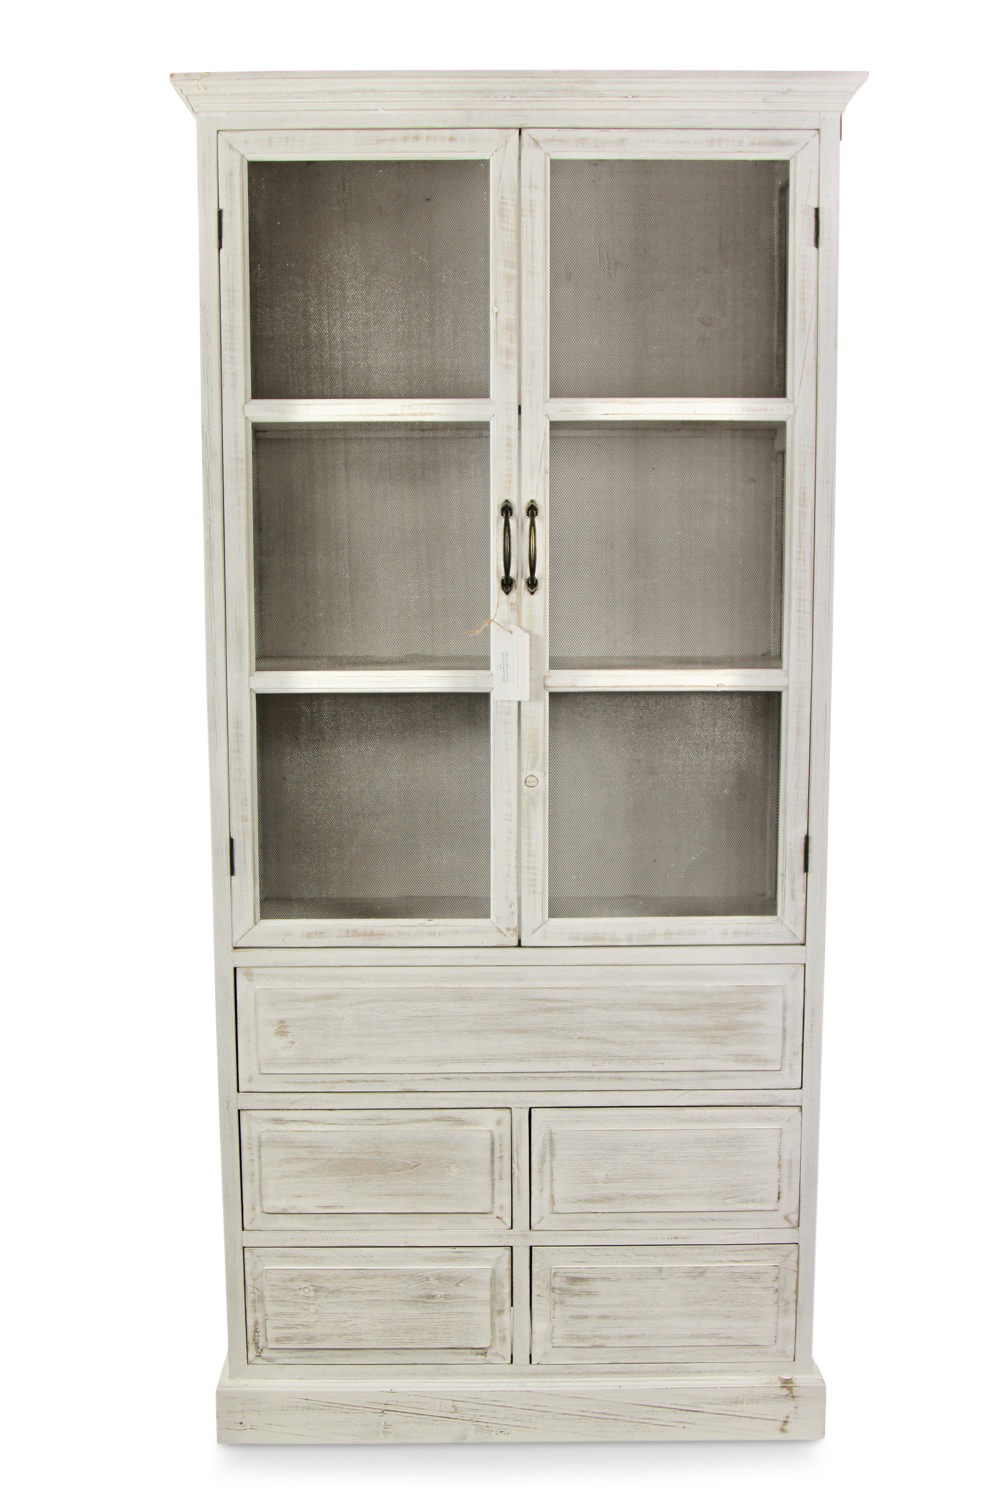 buffet vaisselier rangement bois 5 tiroirs ceruse blanc nu 81x35x169cm. Black Bedroom Furniture Sets. Home Design Ideas